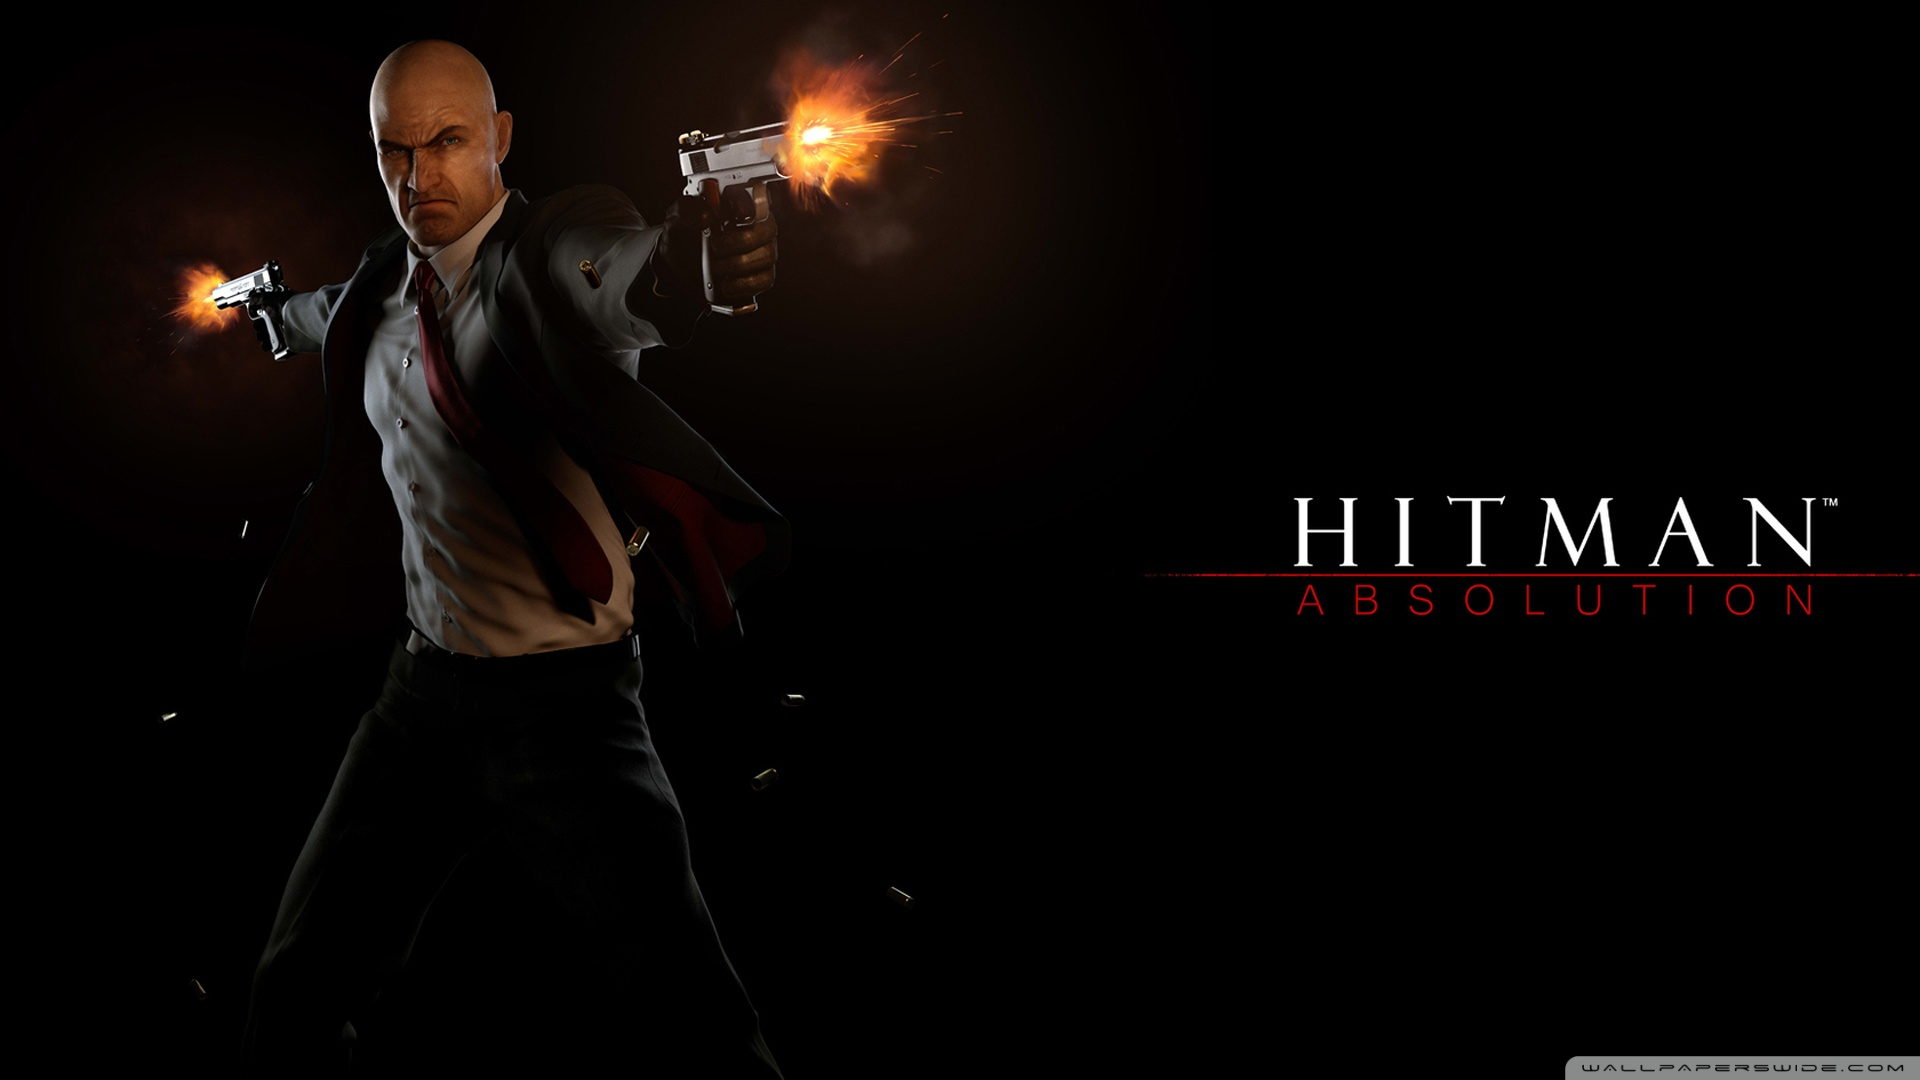 hitman absolution 3 wallpaper 1920x1080 1920x1080